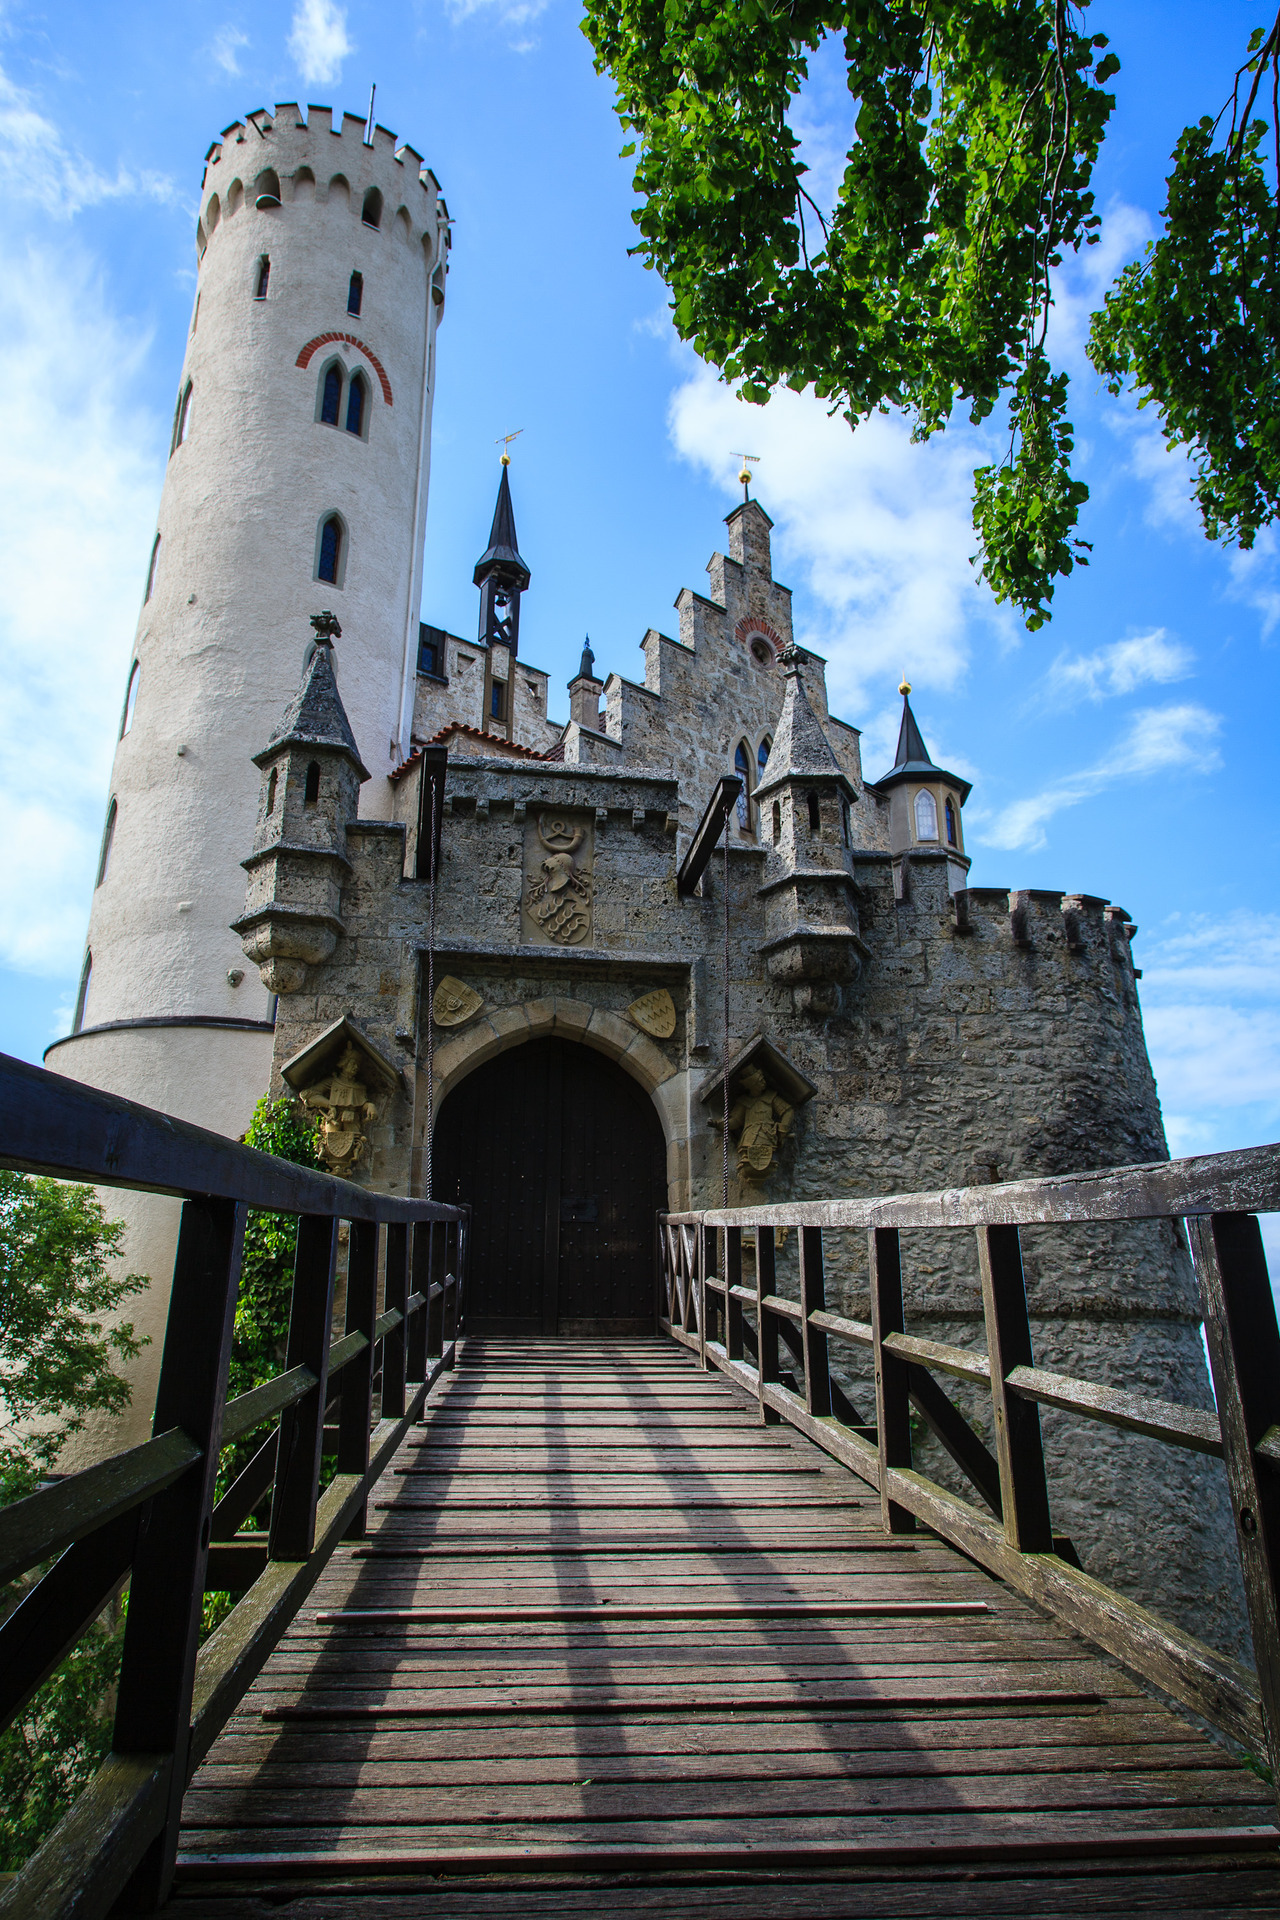 Lichtenstein Castle, by Omar Chatriwala.